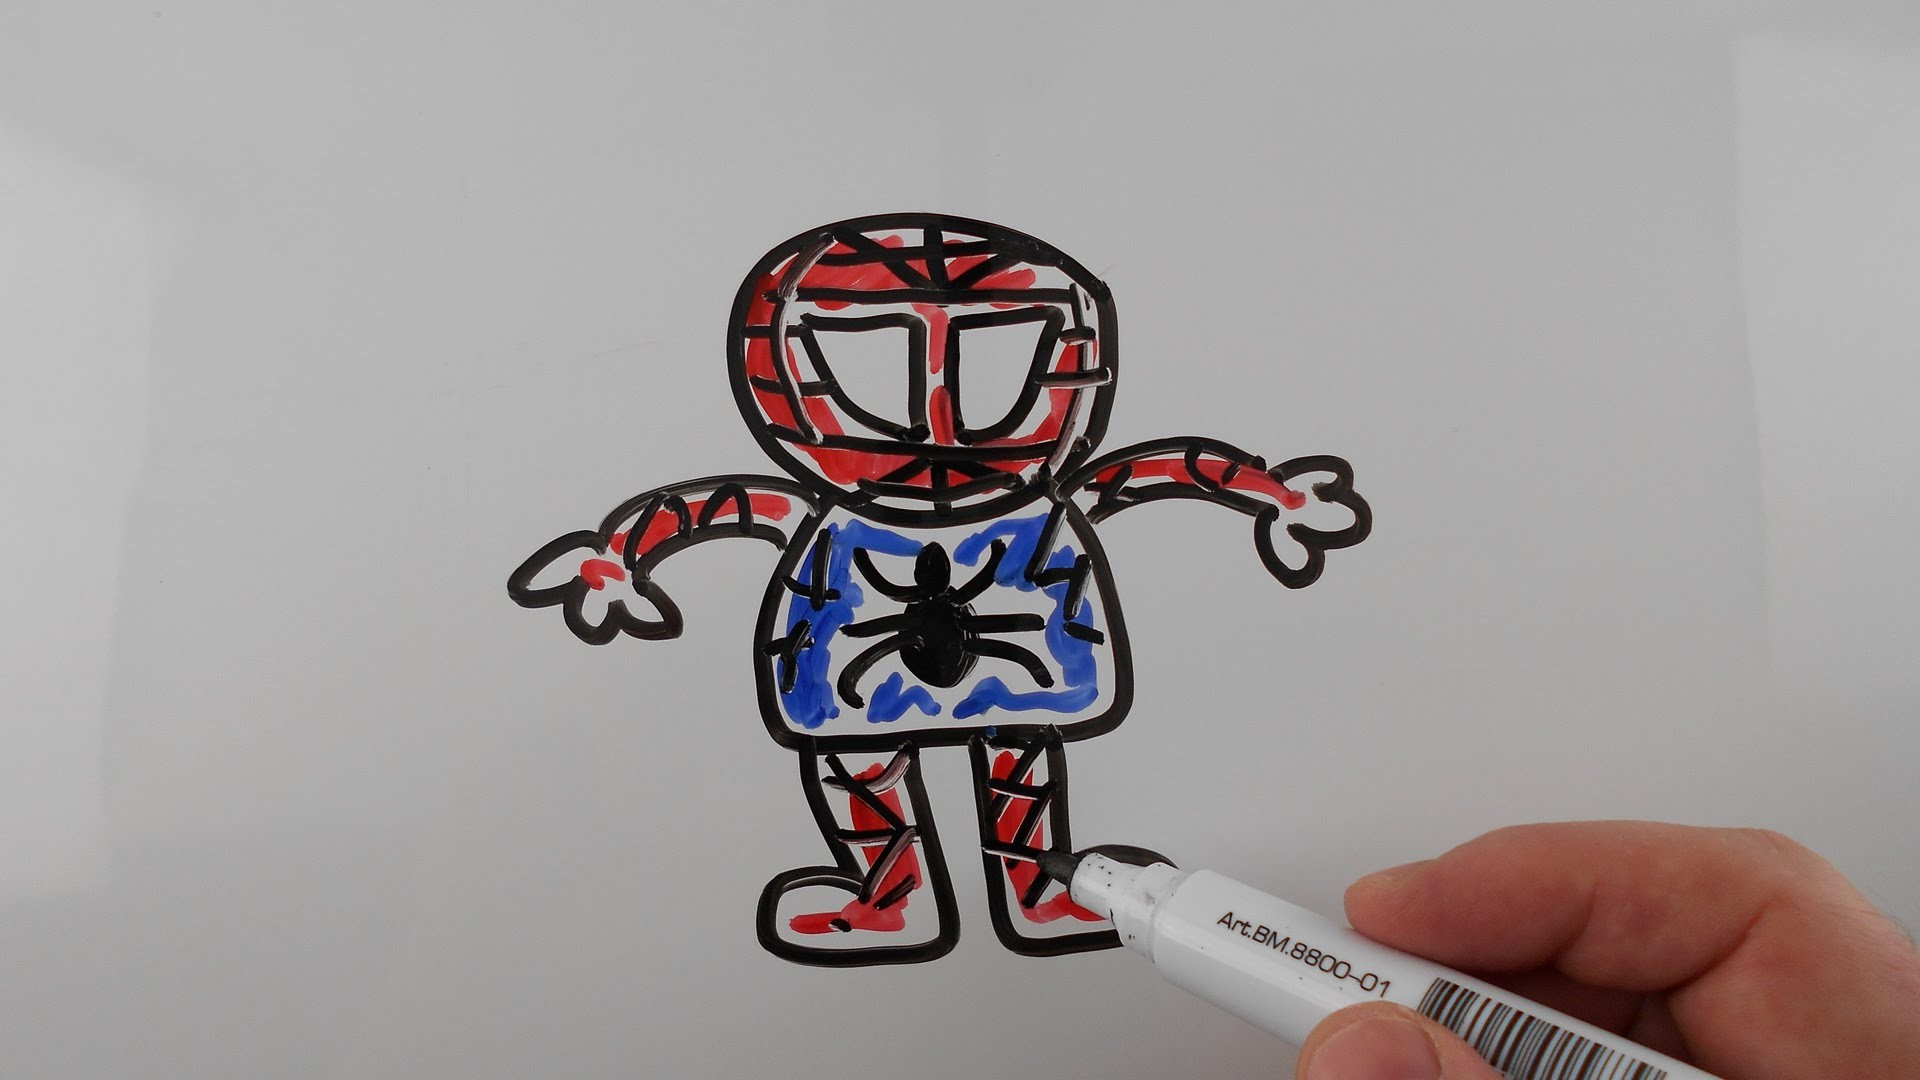 1920x1080 How To Draw Spiderman Step By Step Very Easy For Kids. Drawing